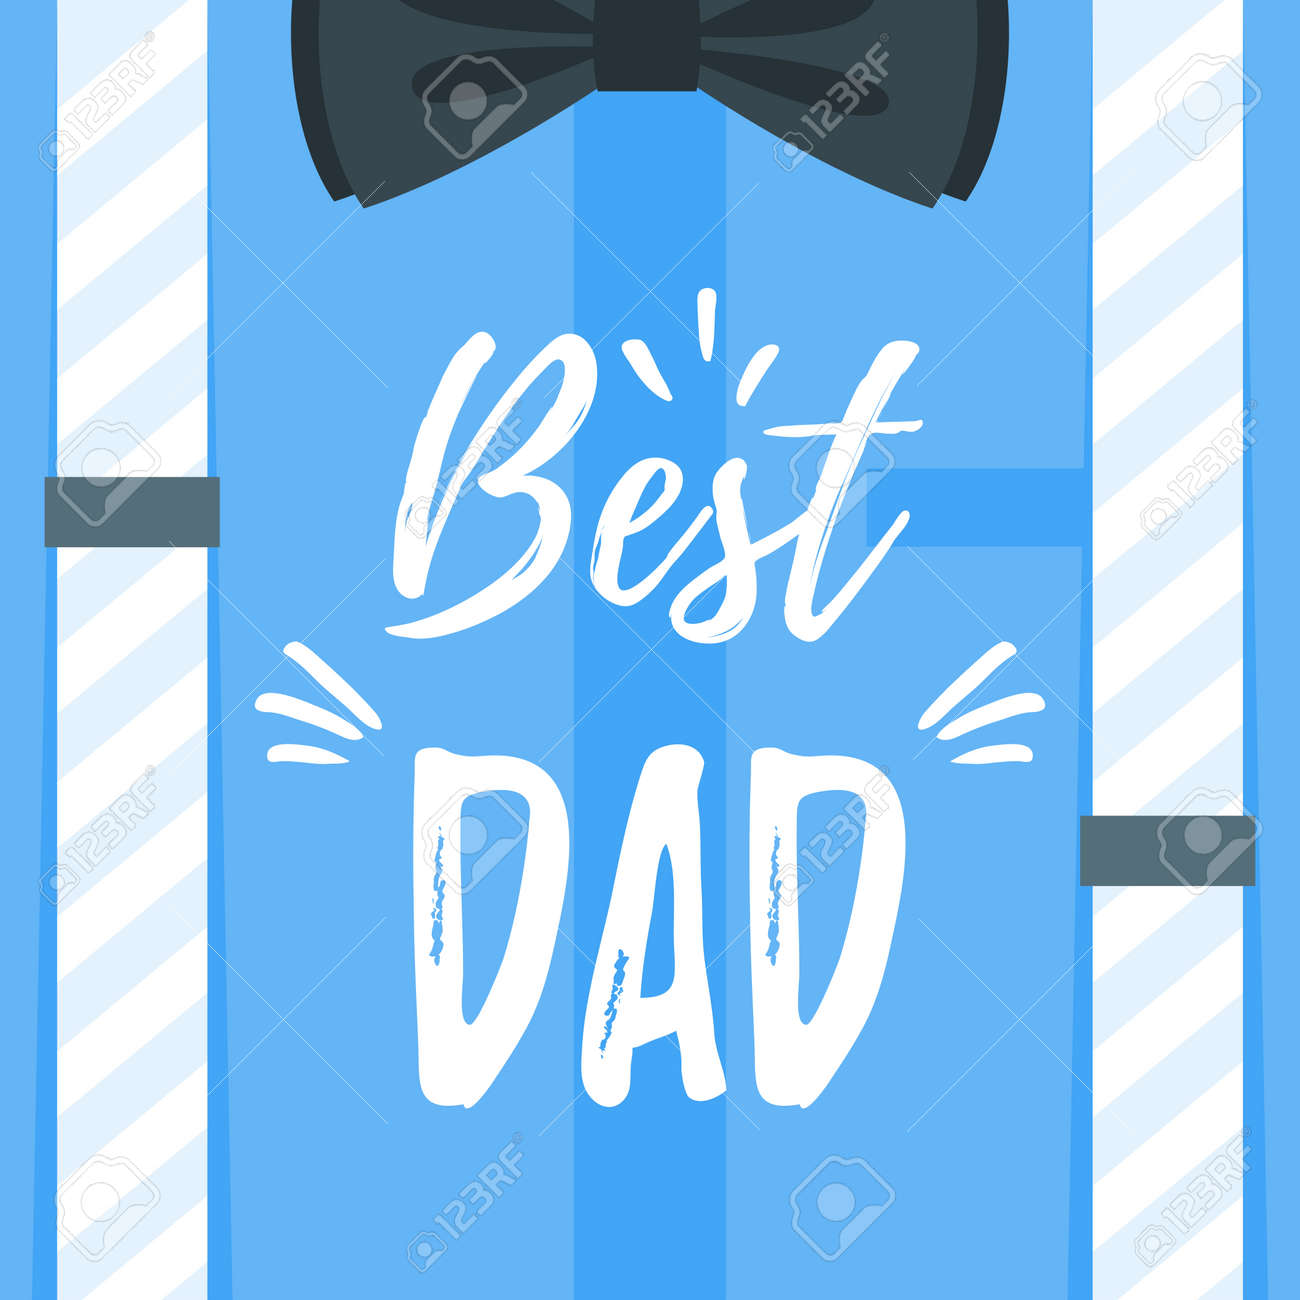 Vector Cartoon Style Illustration Of Fathers Day Greeting Card